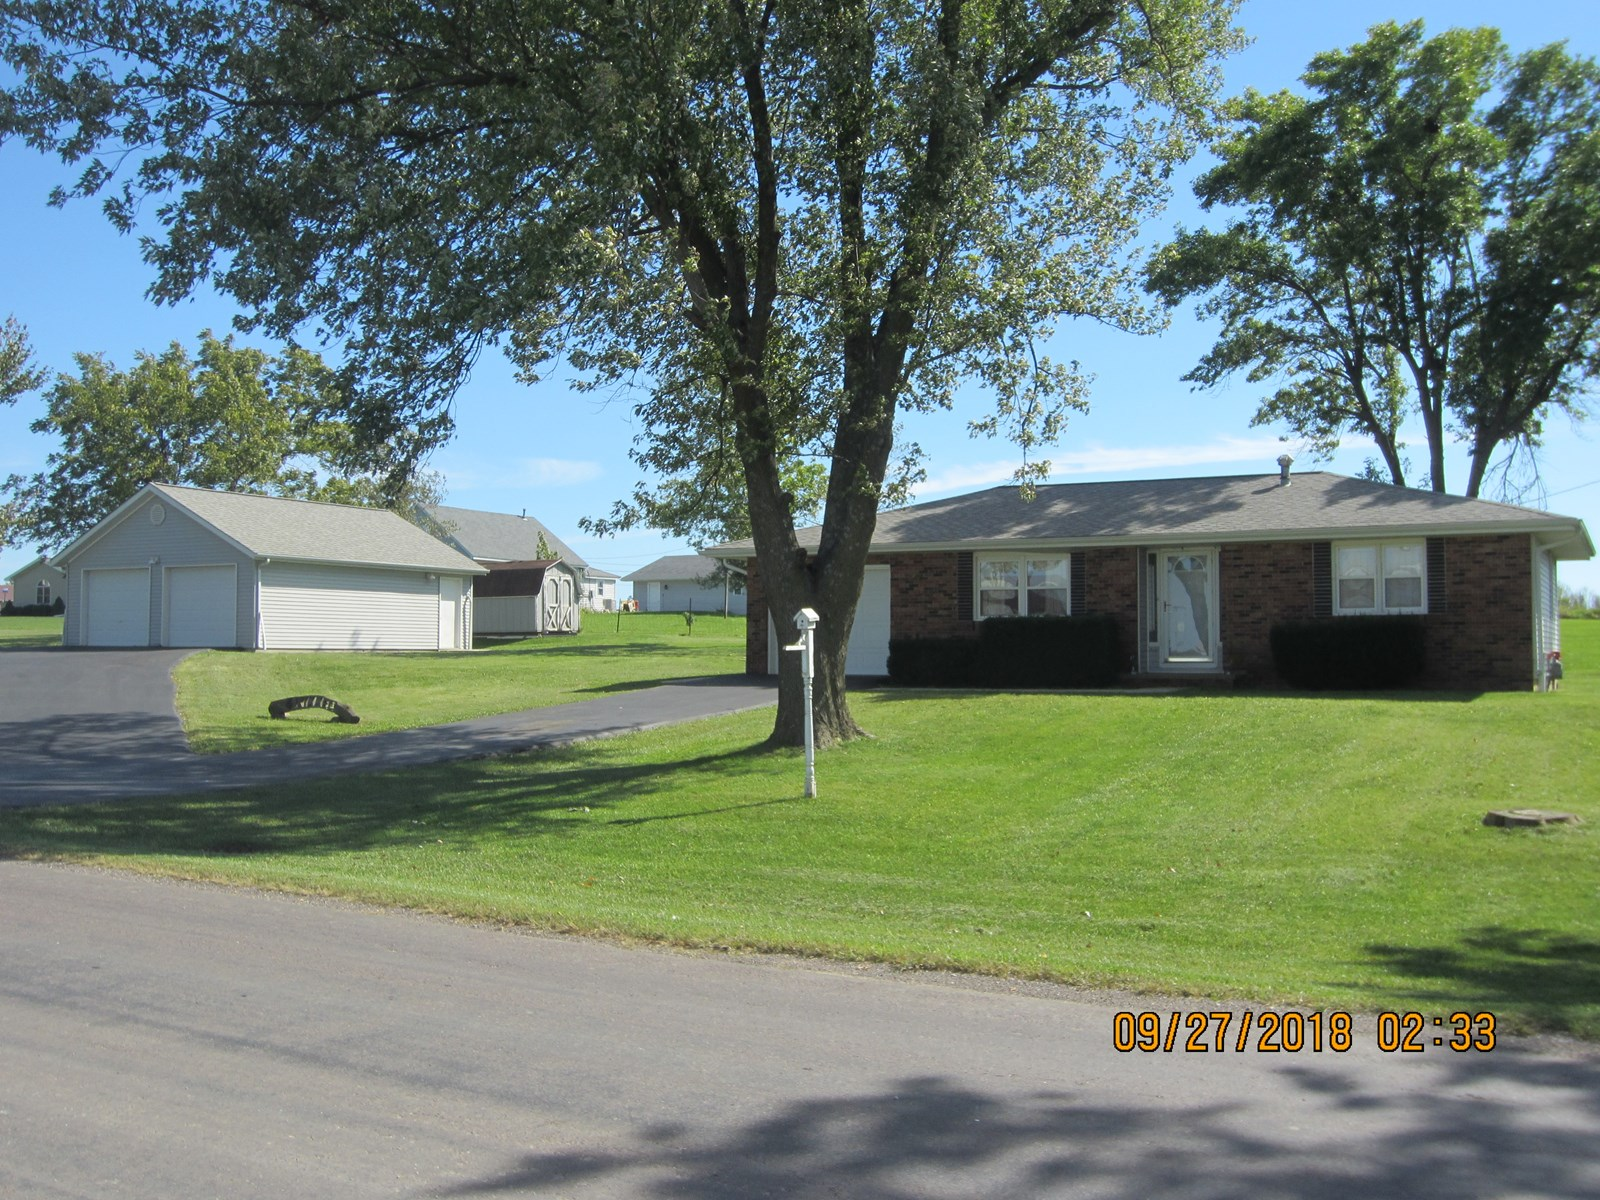 House in town for sale in Unionville, Missouri